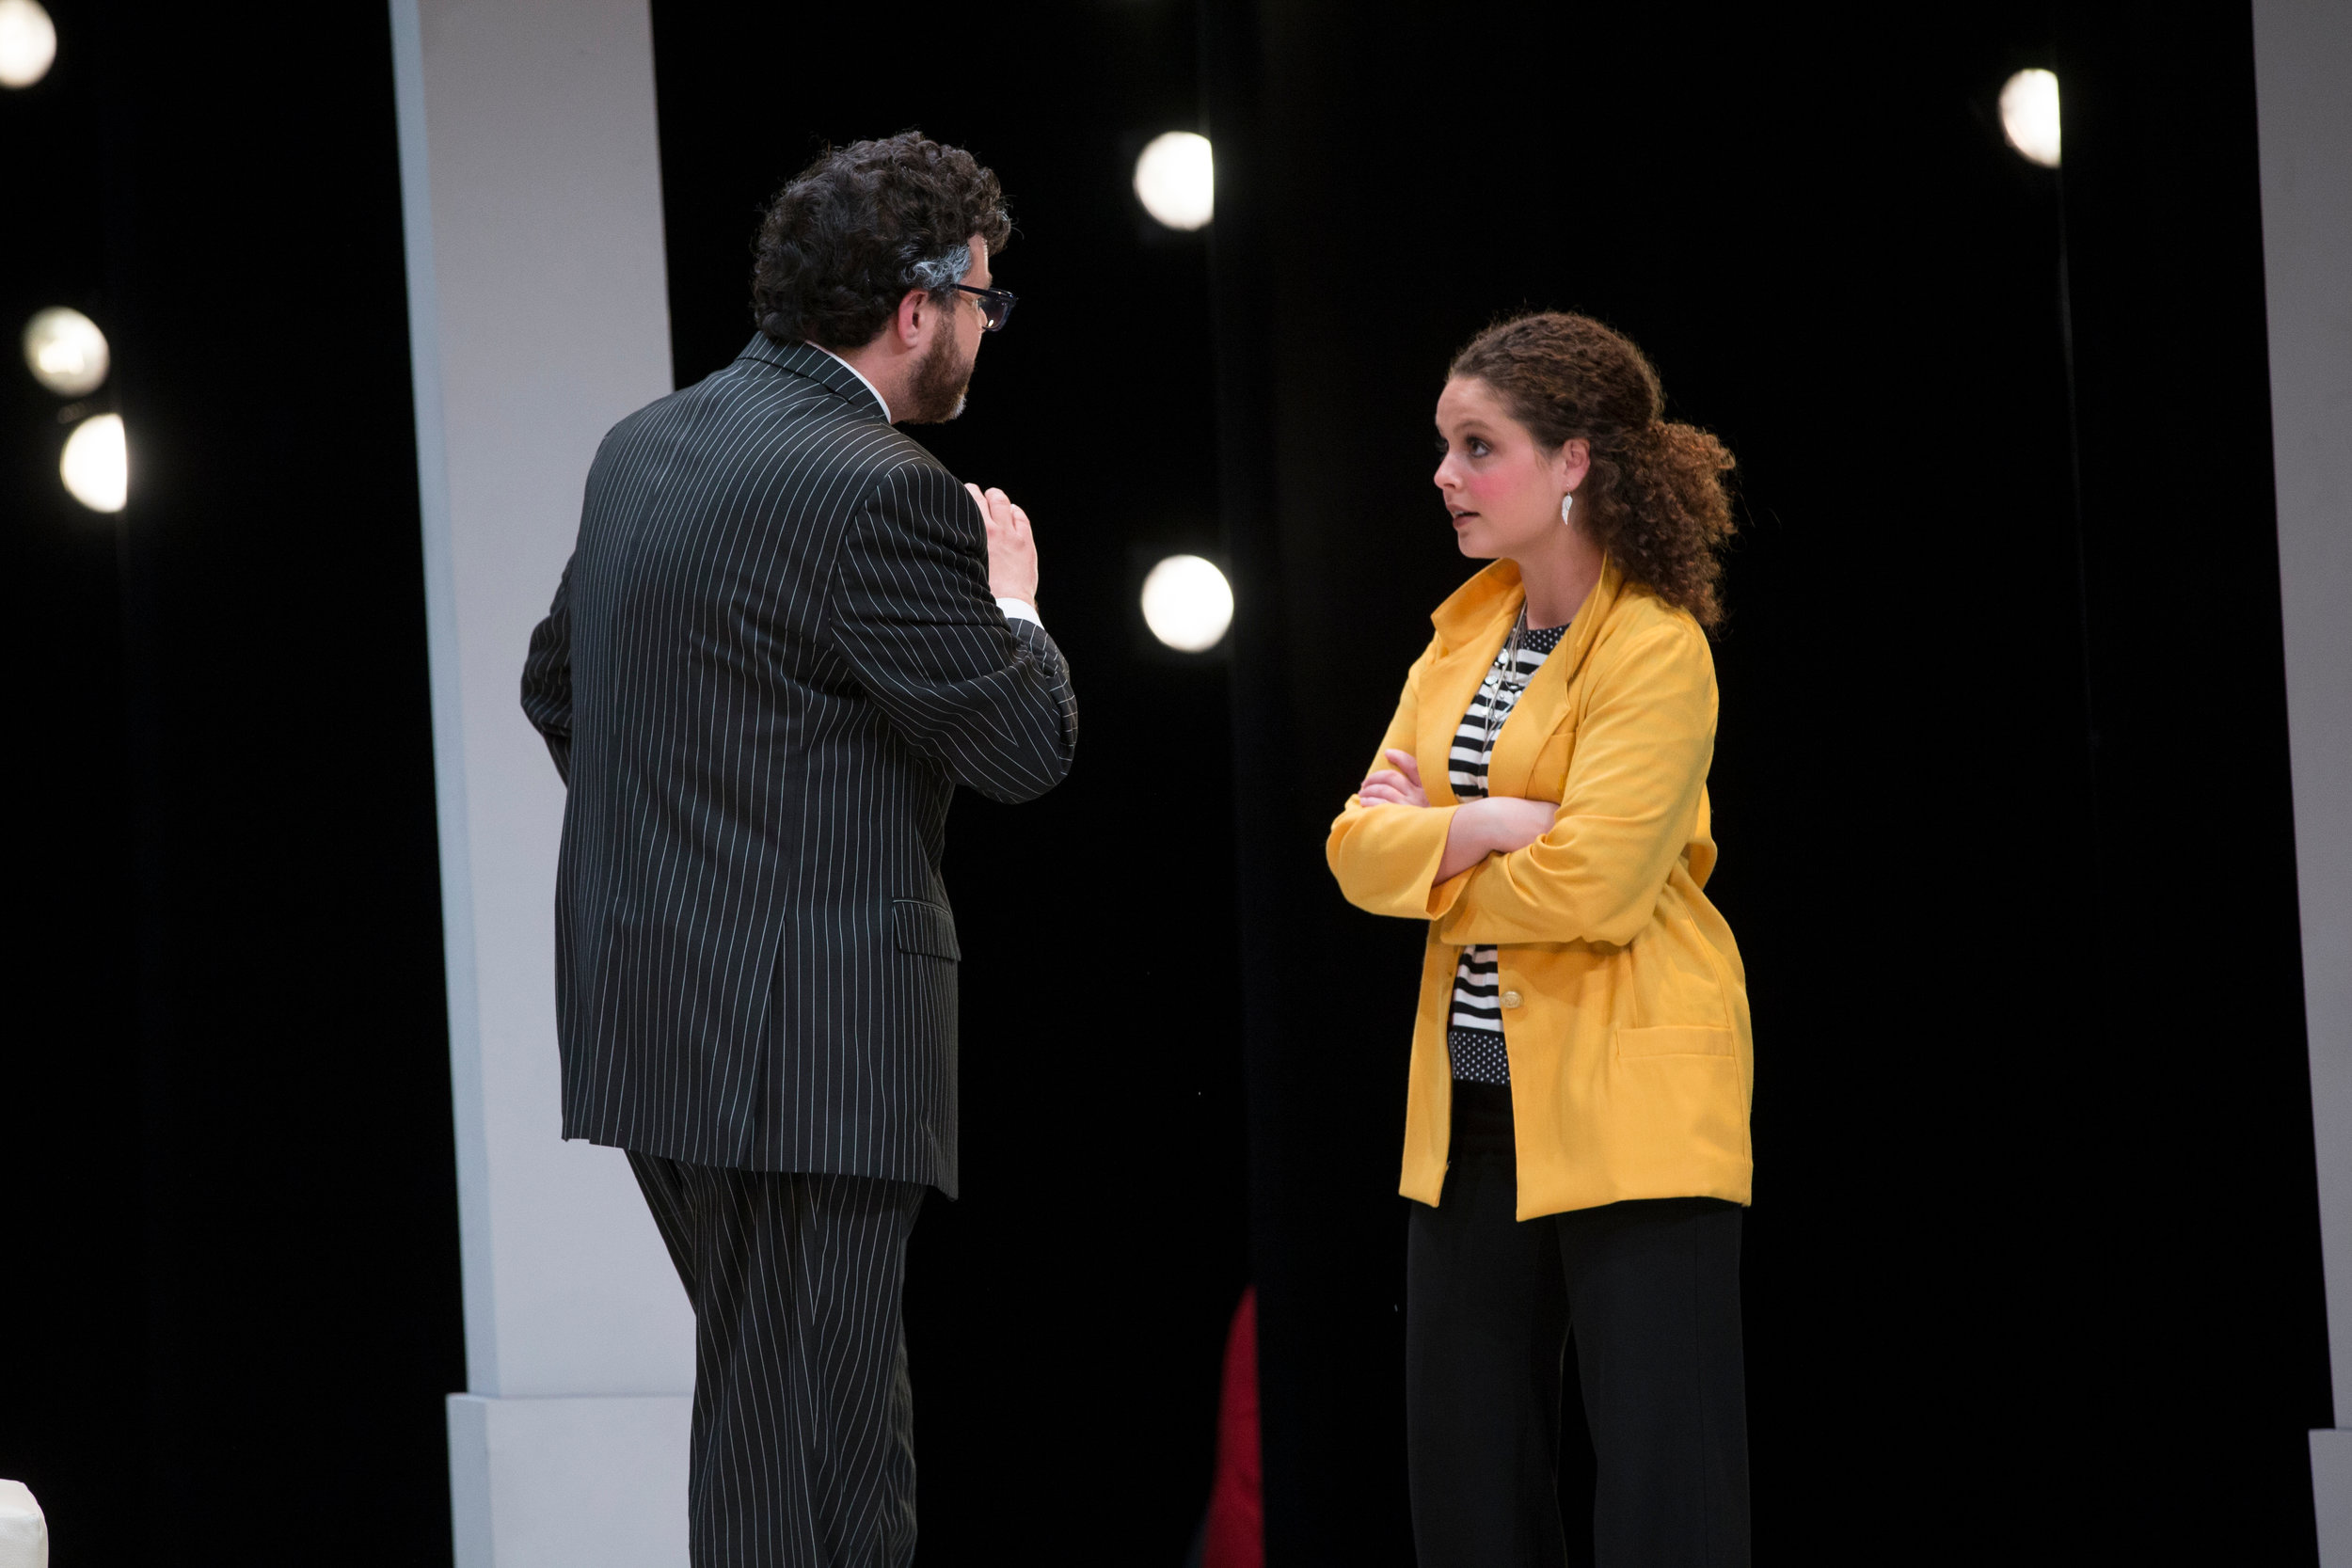 Tartuffe, courtesy Miami University